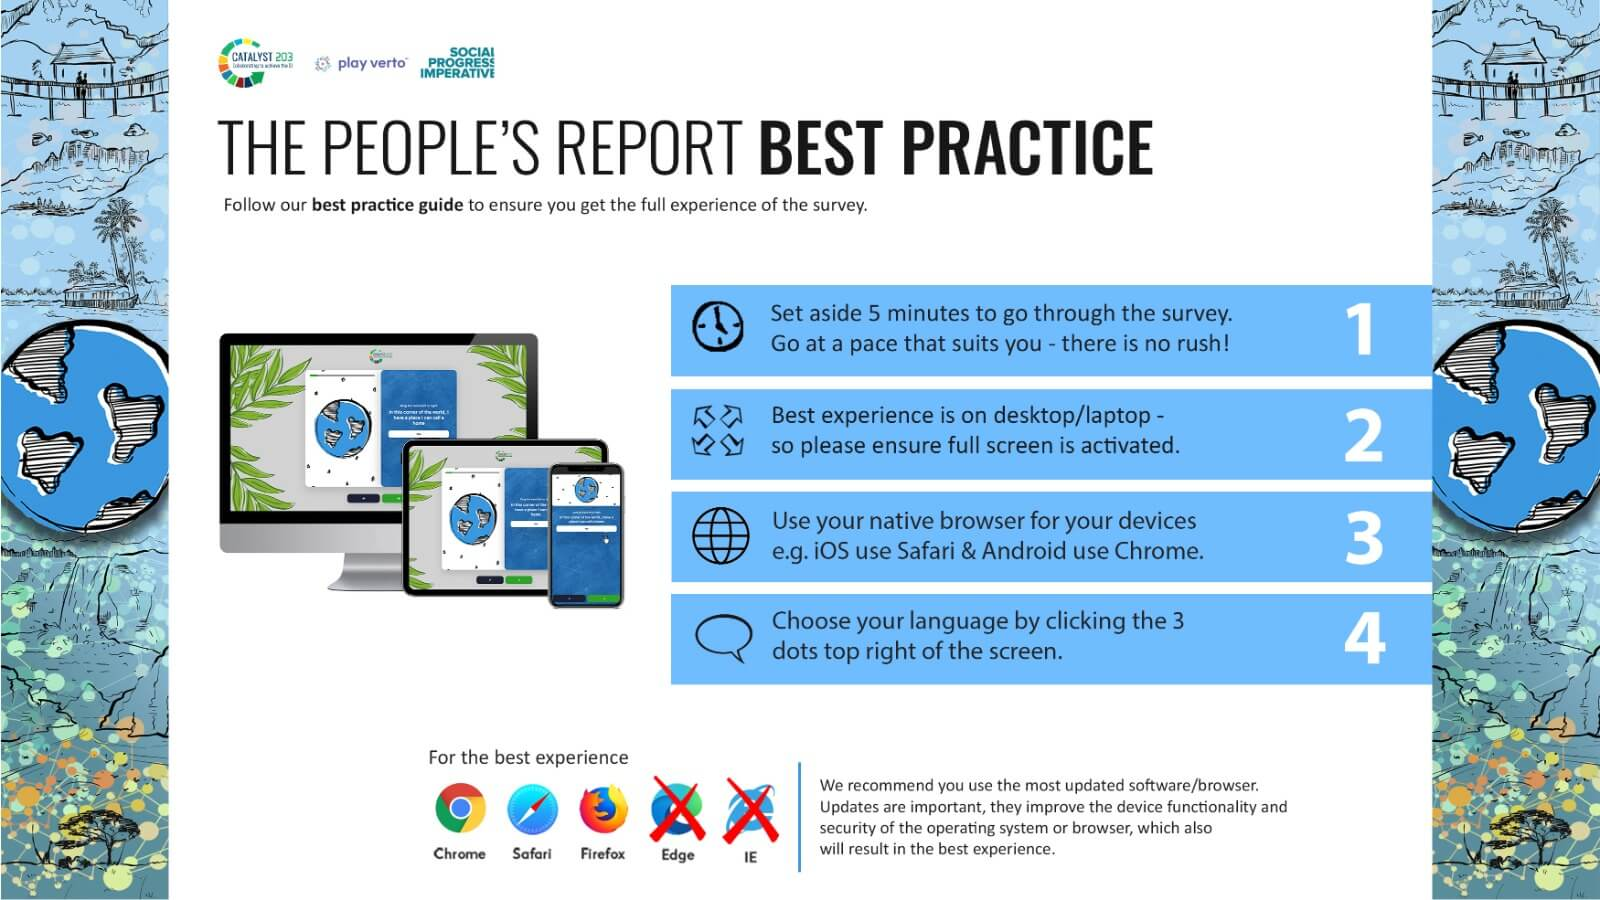 Best practises for taking the survey infographic